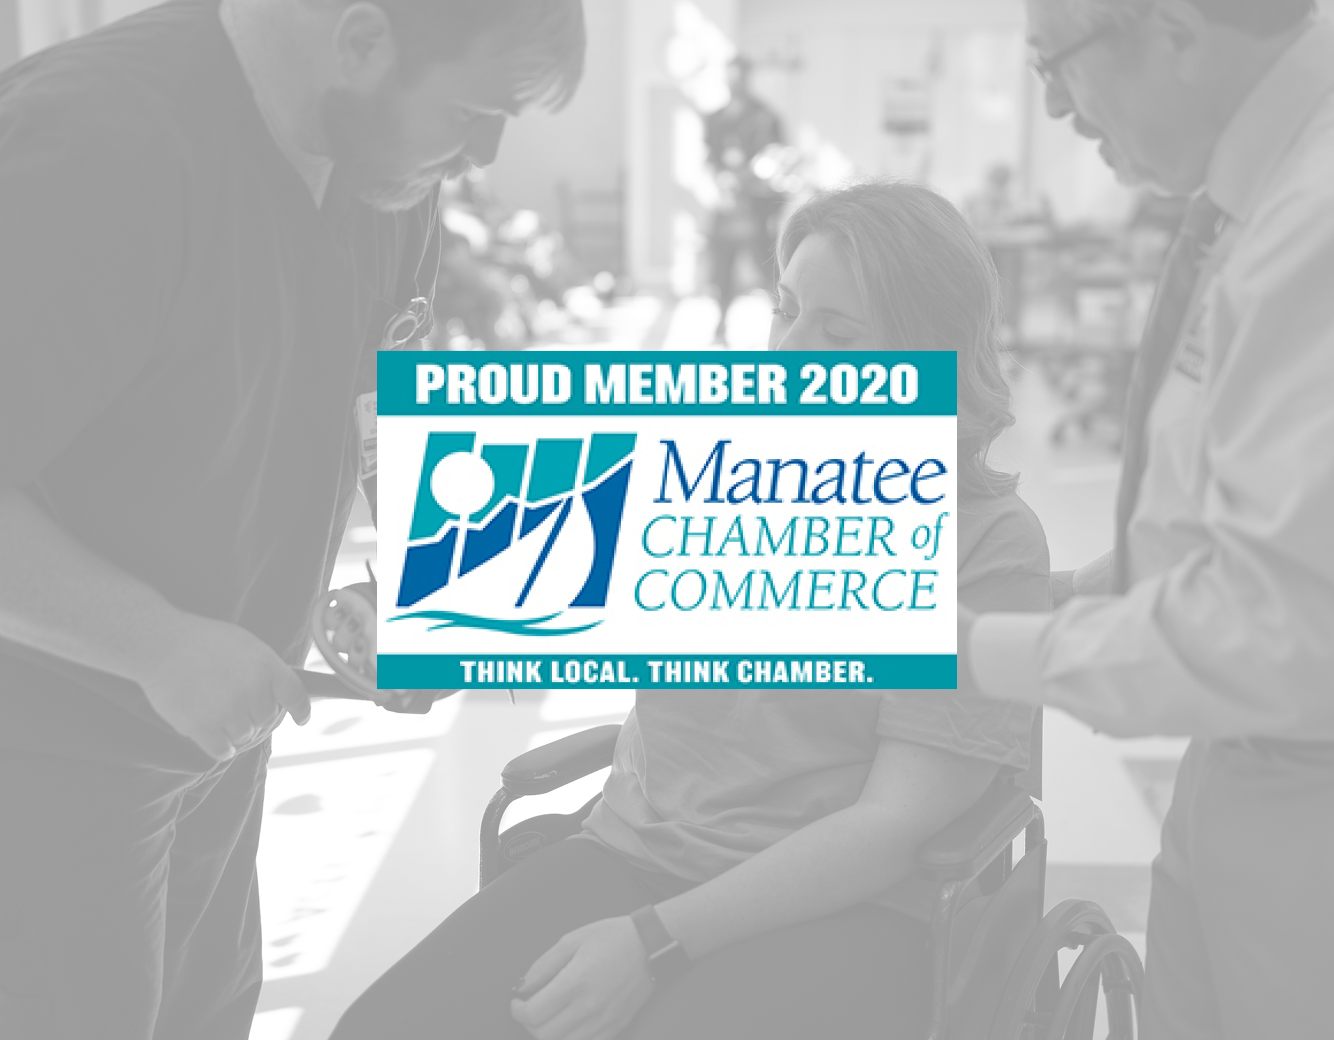 Proud member 2020 Manatee Chamber of Commerce | Think Local. Think Chamber.